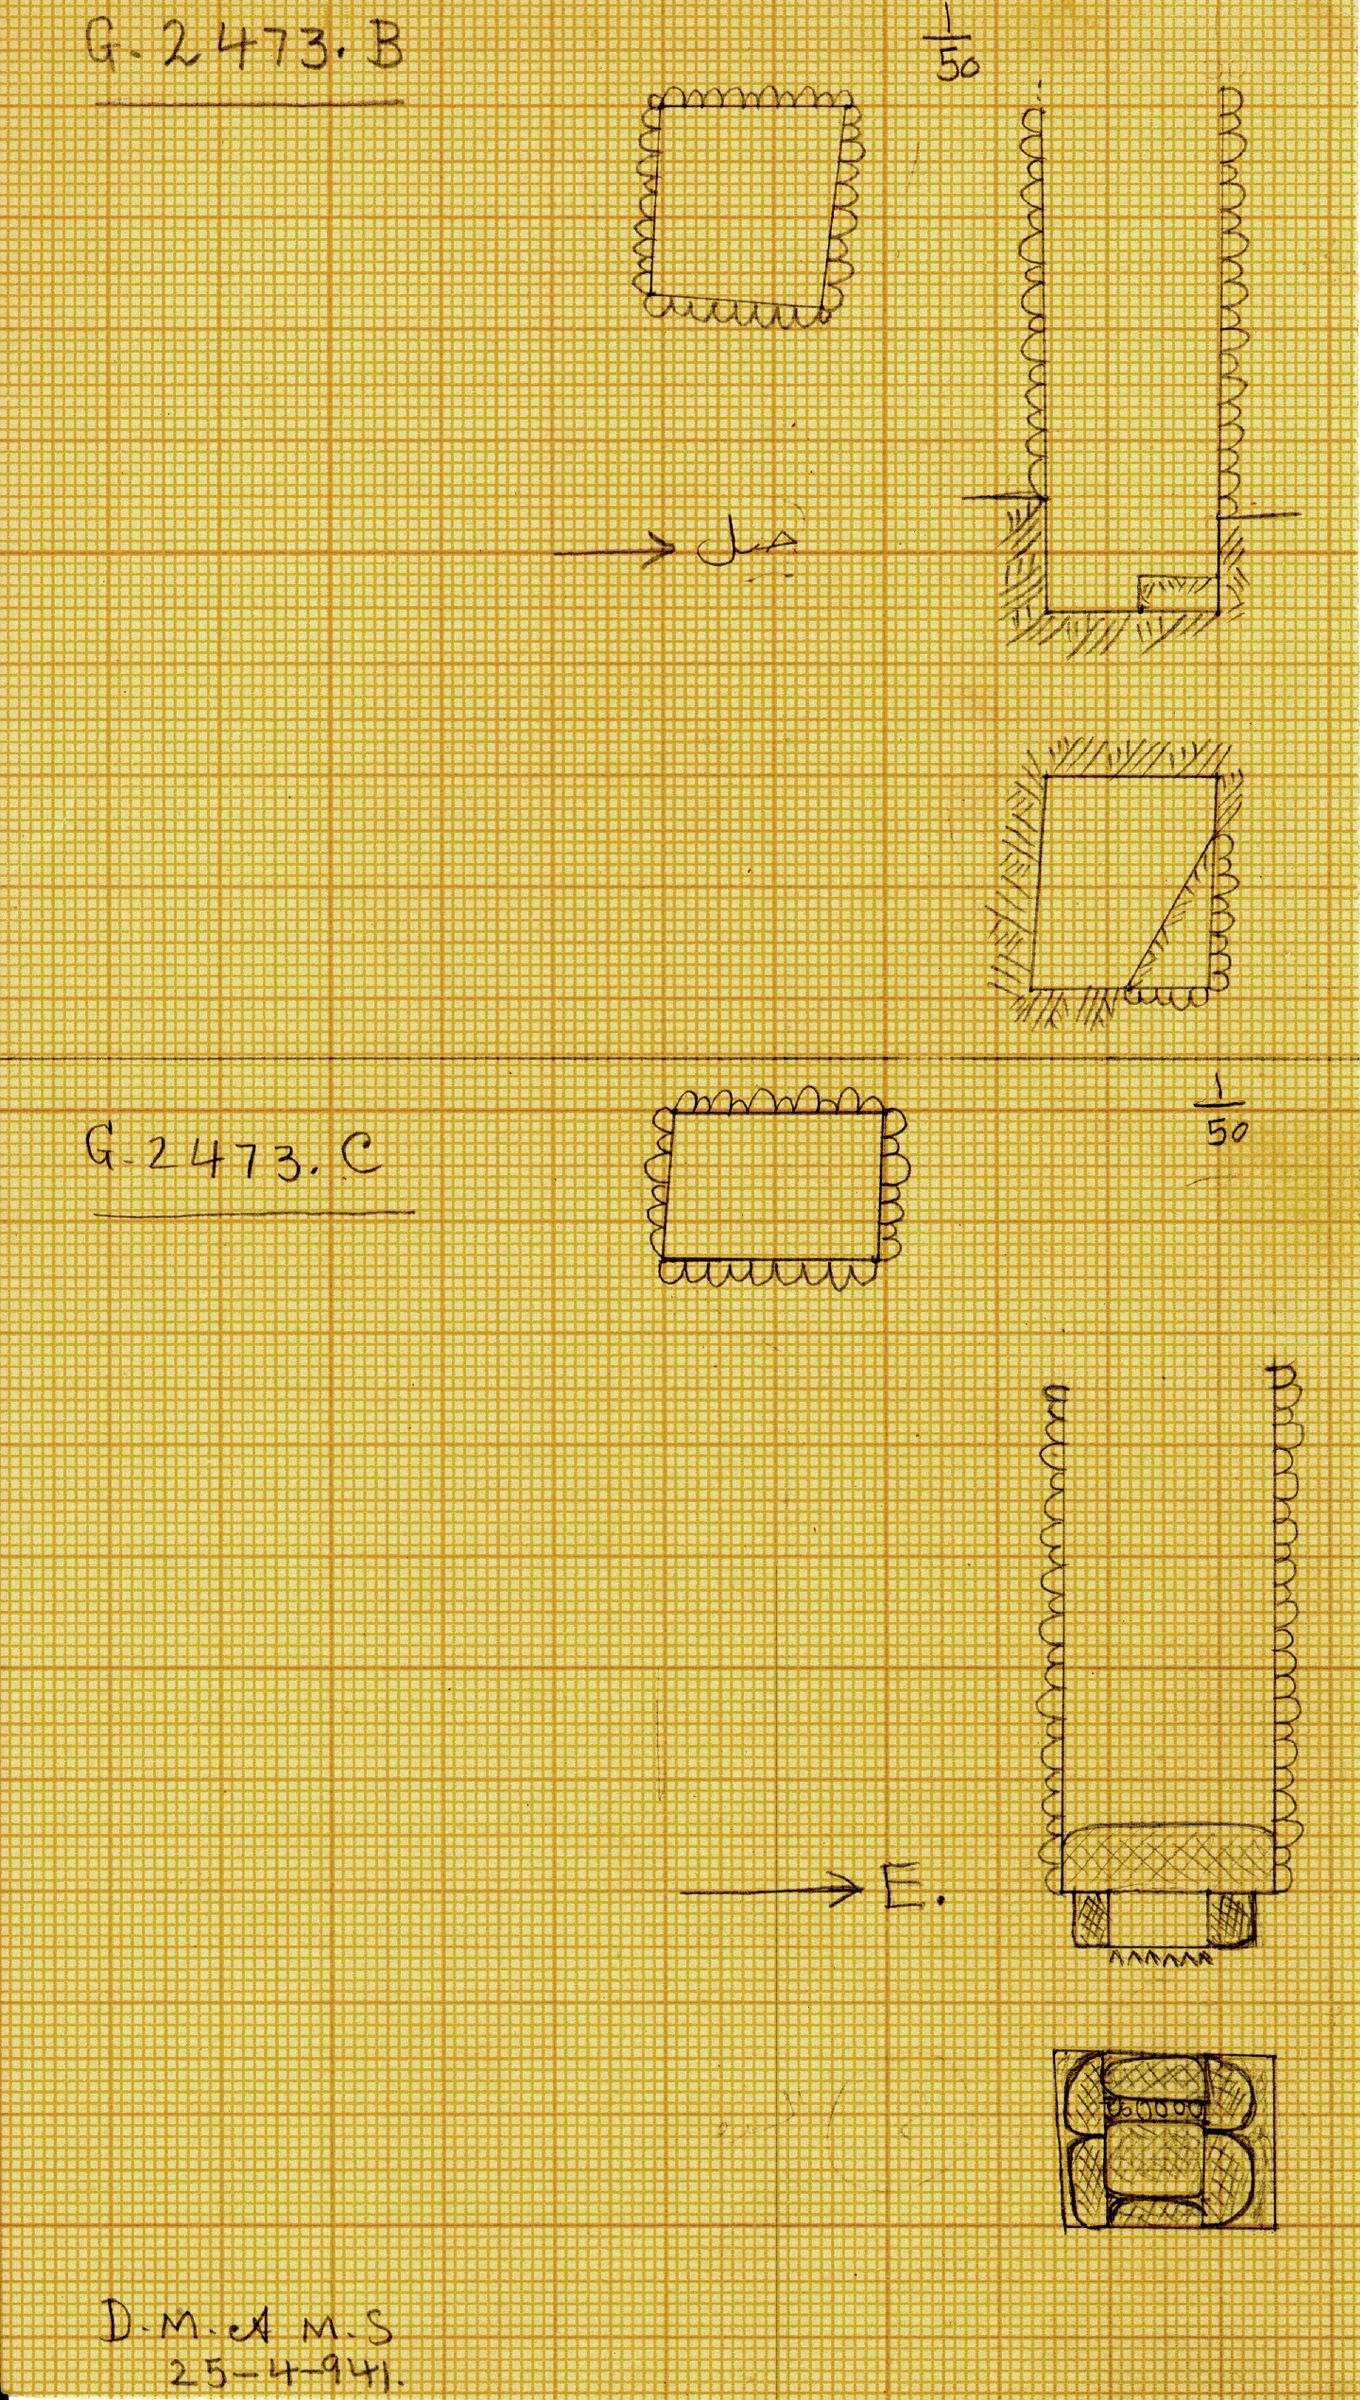 Maps and plans: G 2473, Shaft B and C